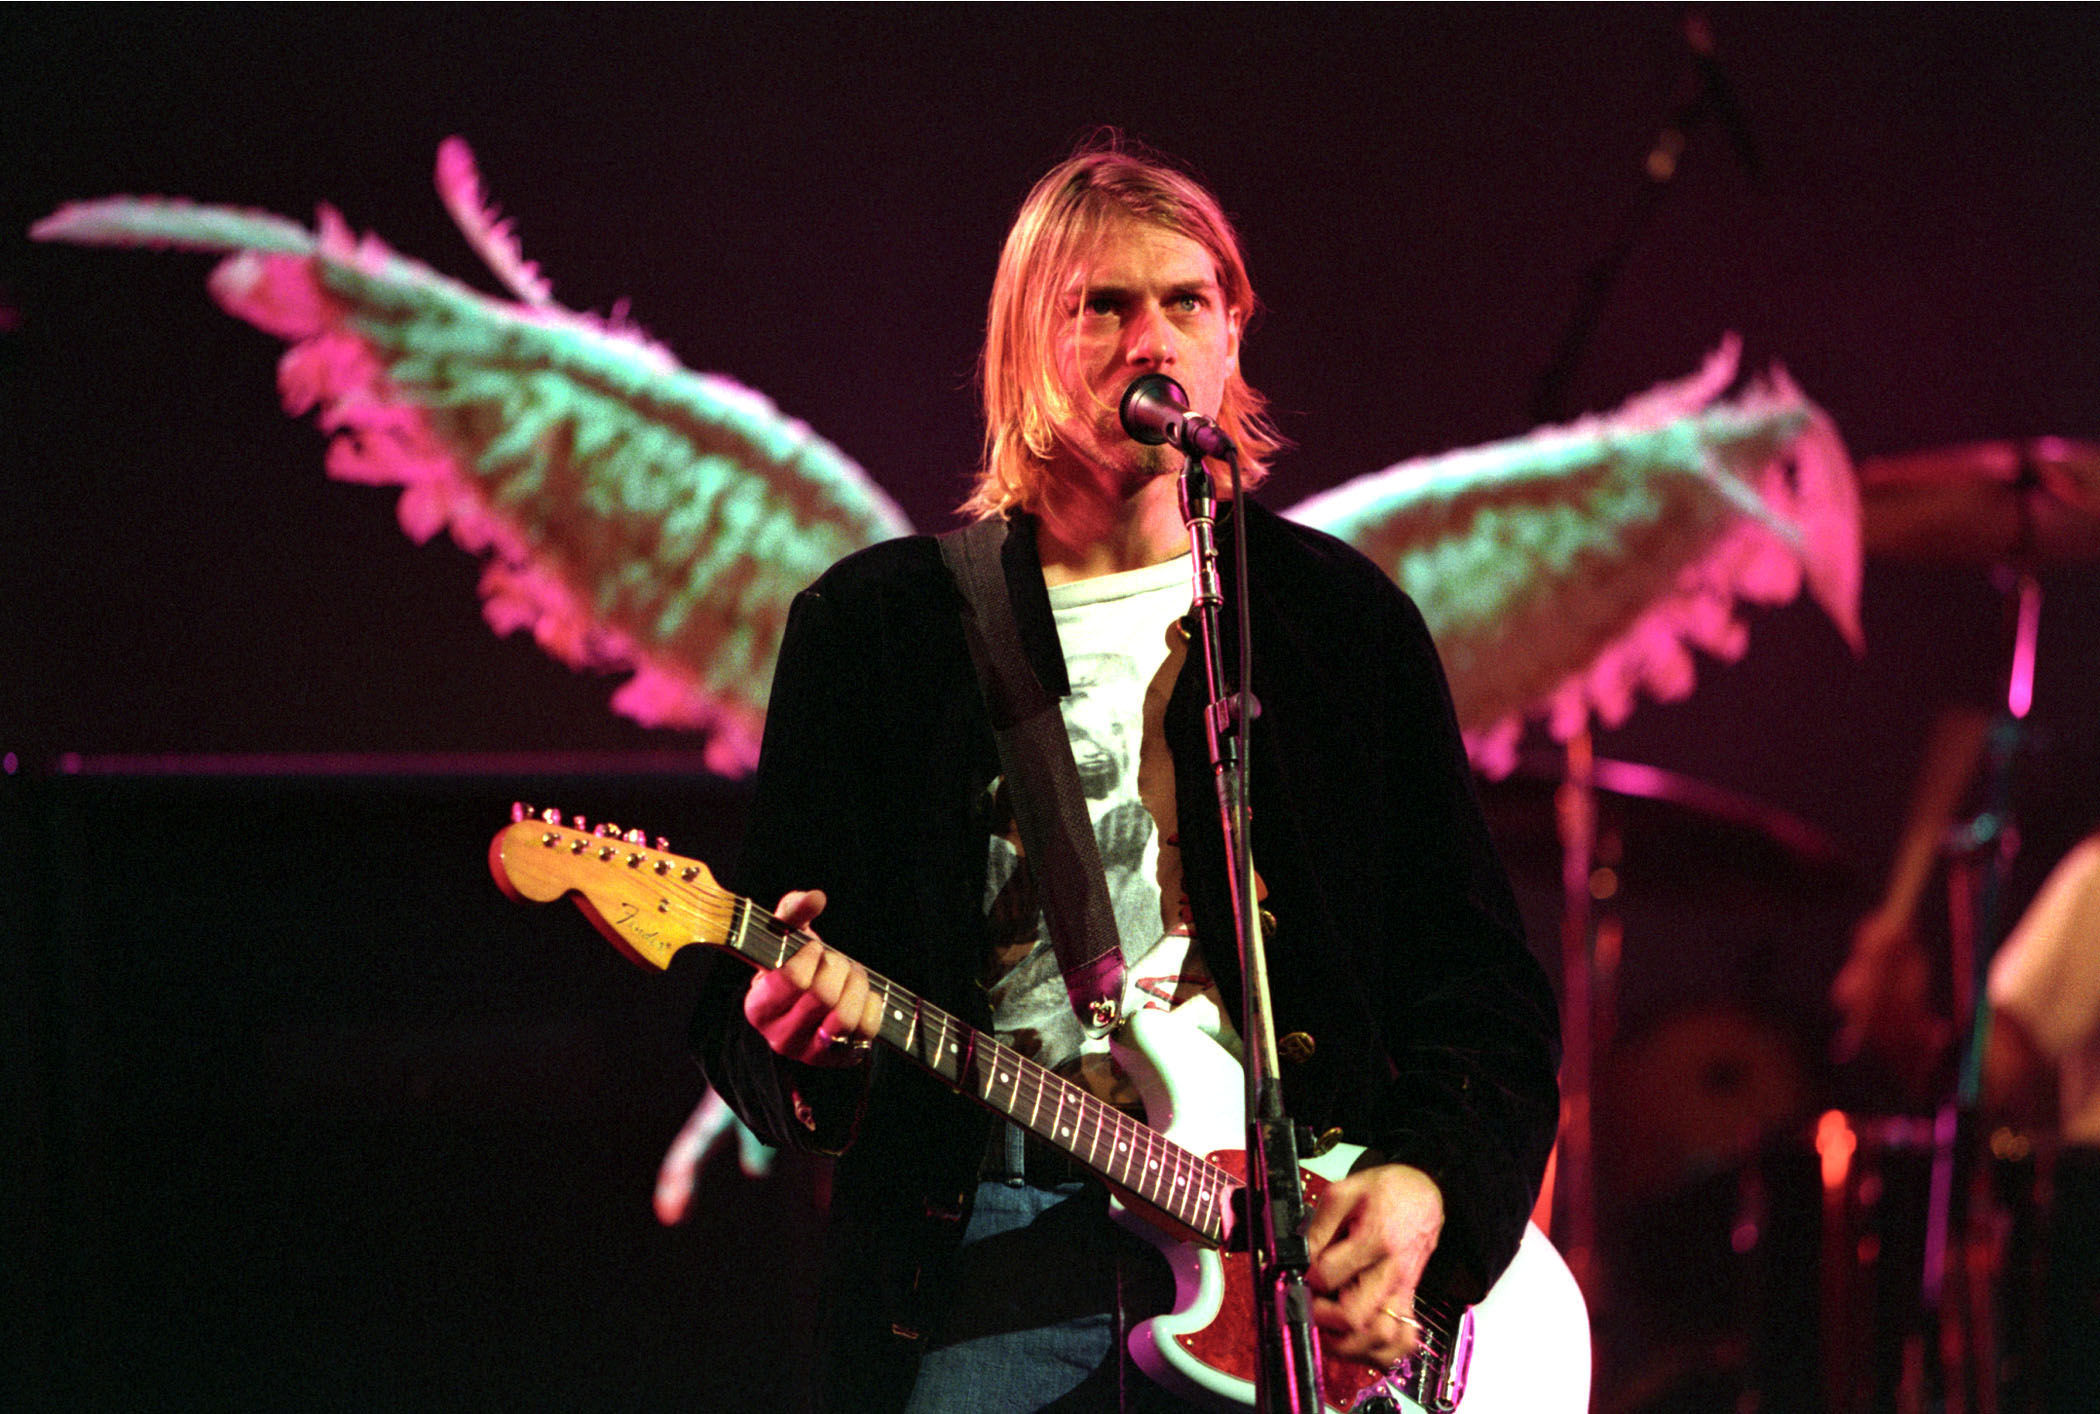 16 things you might not know about Kurt Cobain